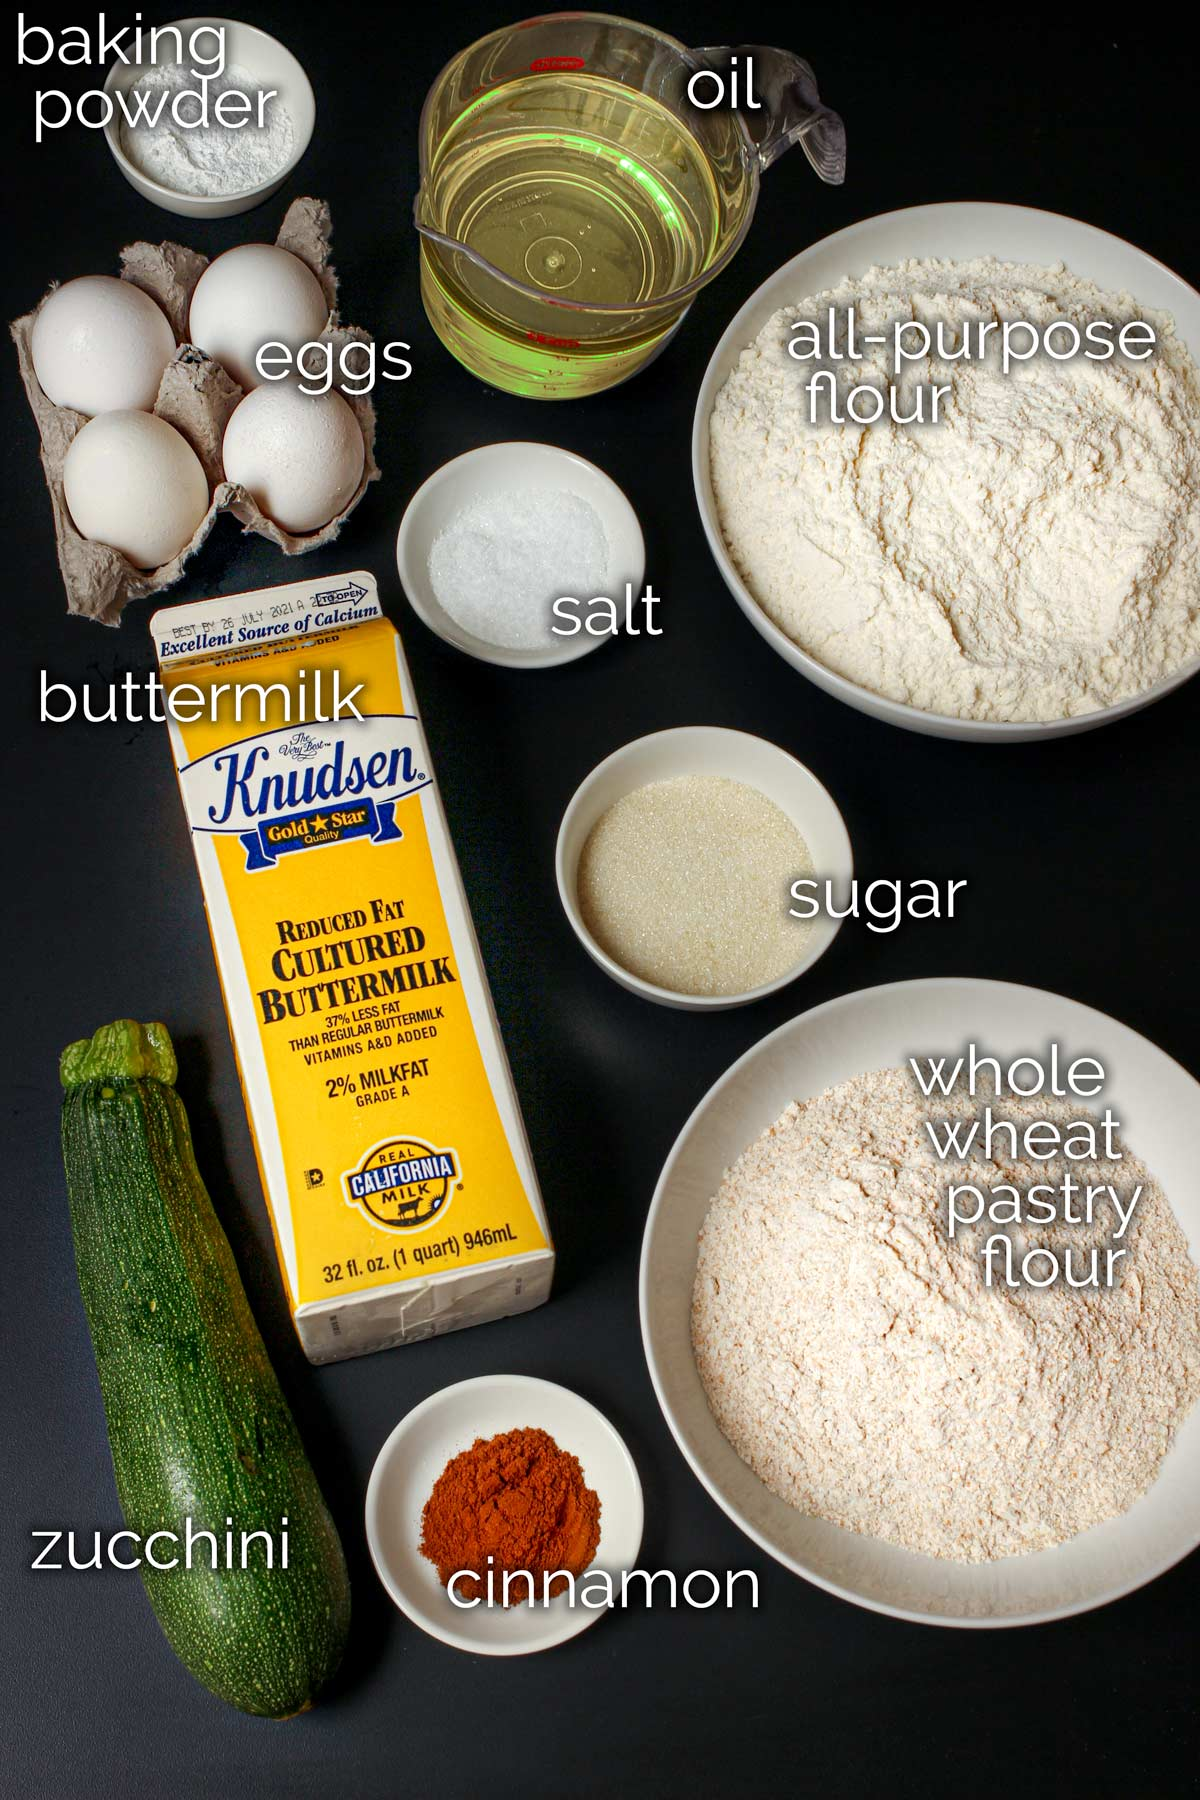 ingredients for zucchini cinnamon waffles laid out on black table top.